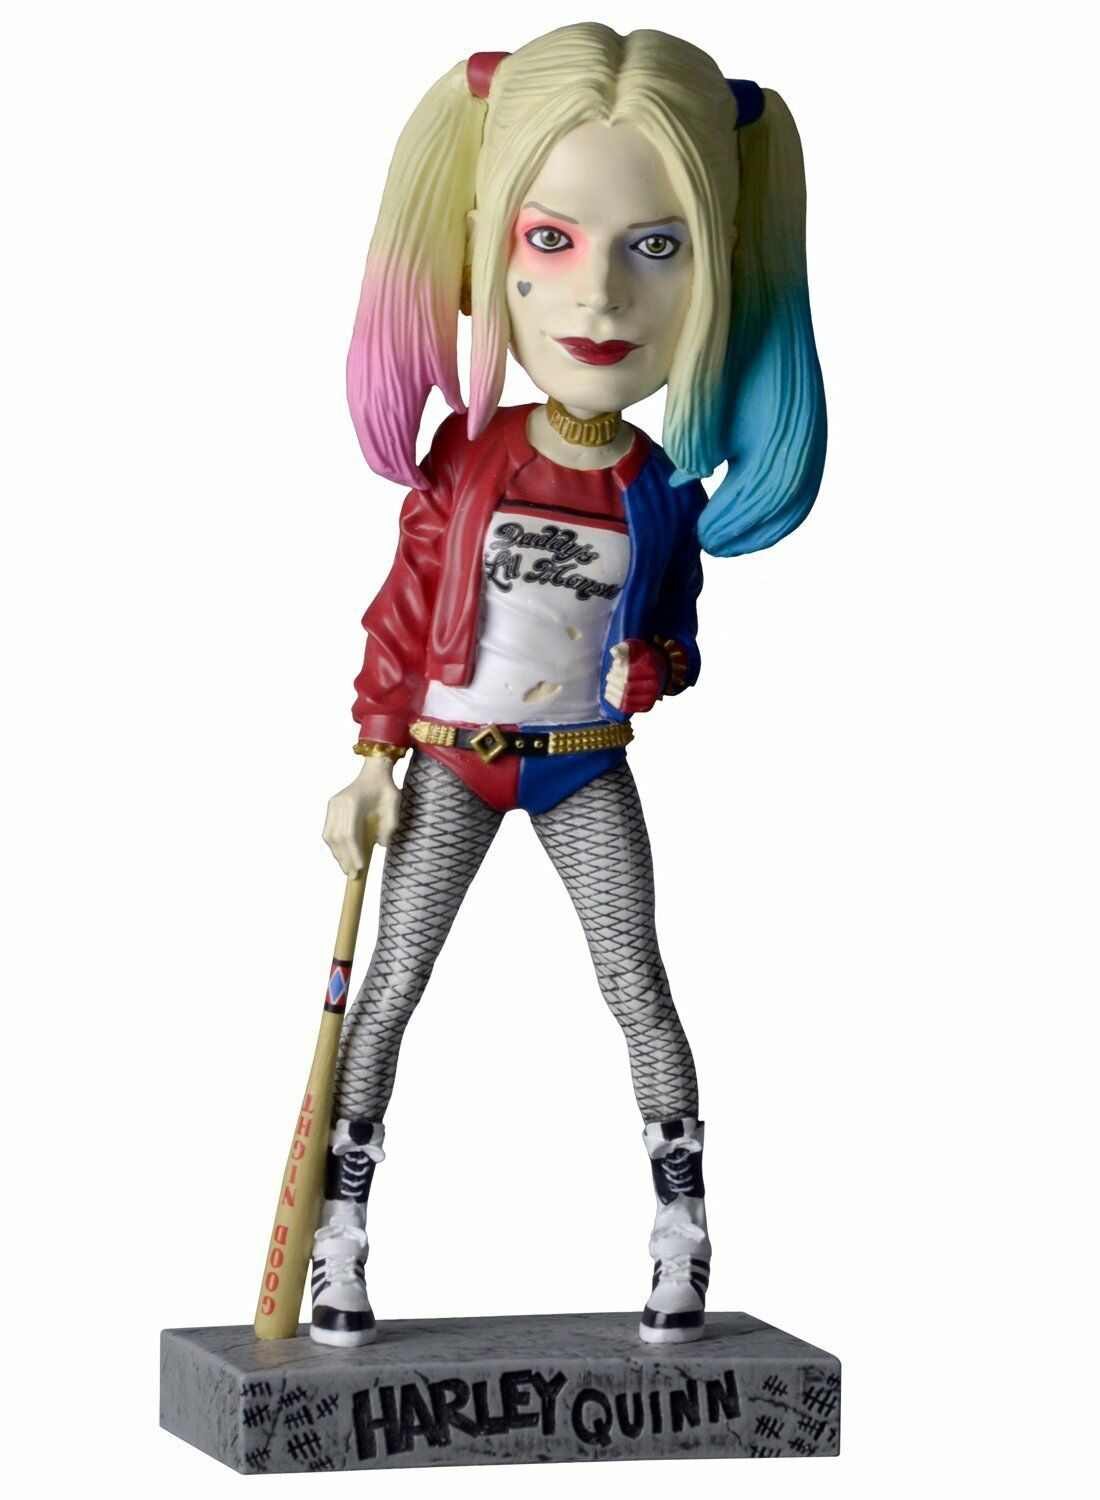 NECA Suicide Squad Film Harley Quinn Bobble Head by suicide squad 20 cm